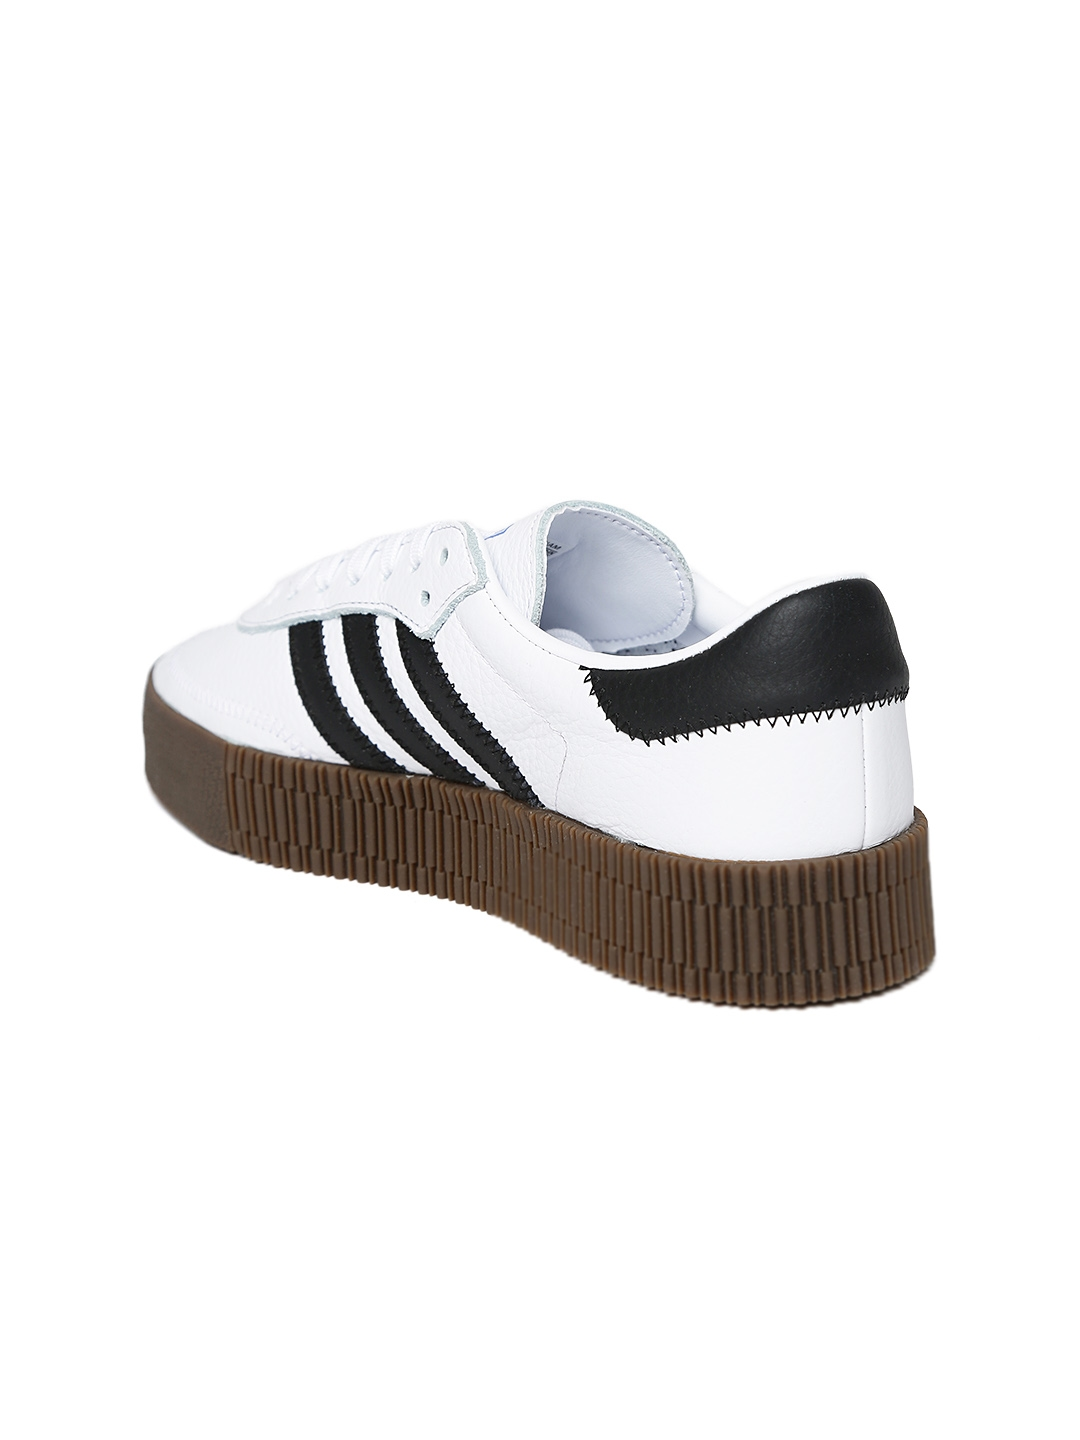 differently fc422 1cfe9 ADIDAS Originals Women White Sambarose Leather Casual Shoes